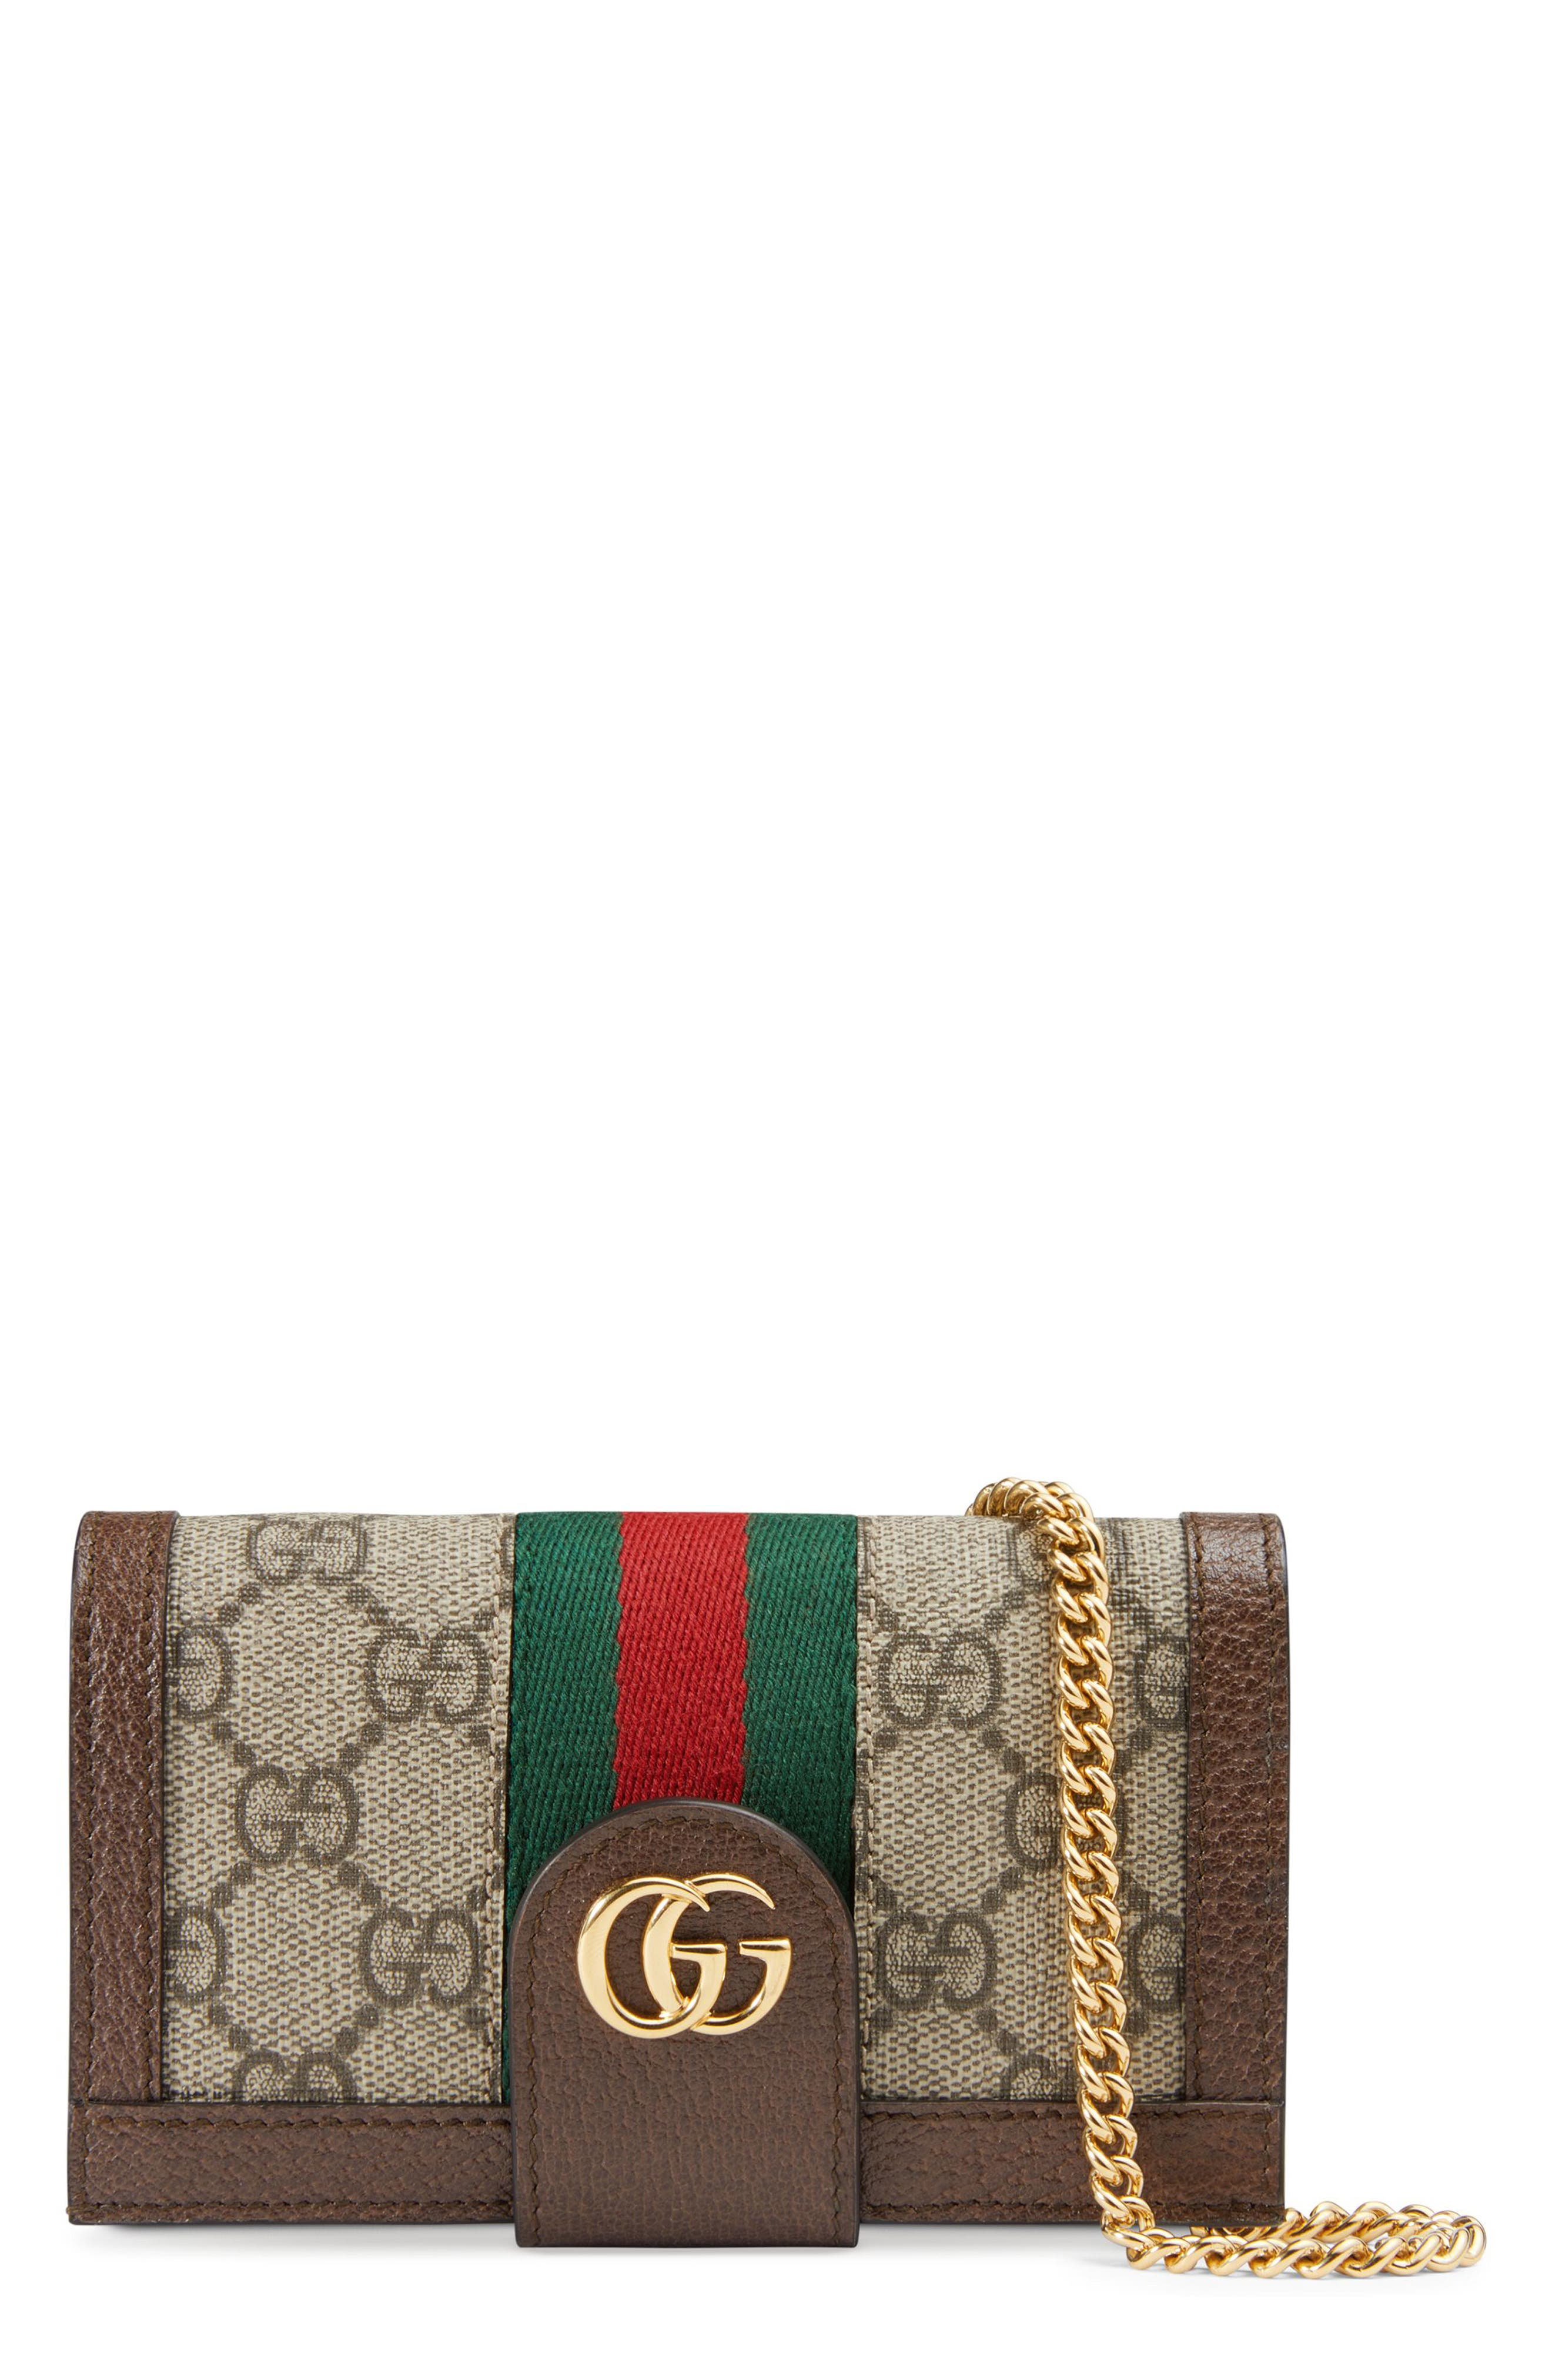 GUCCI, Ophidia GG Supreme iPhone 7/8 Case, Main thumbnail 1, color, BEIGE EBONY/ ACERO/ VERT RED